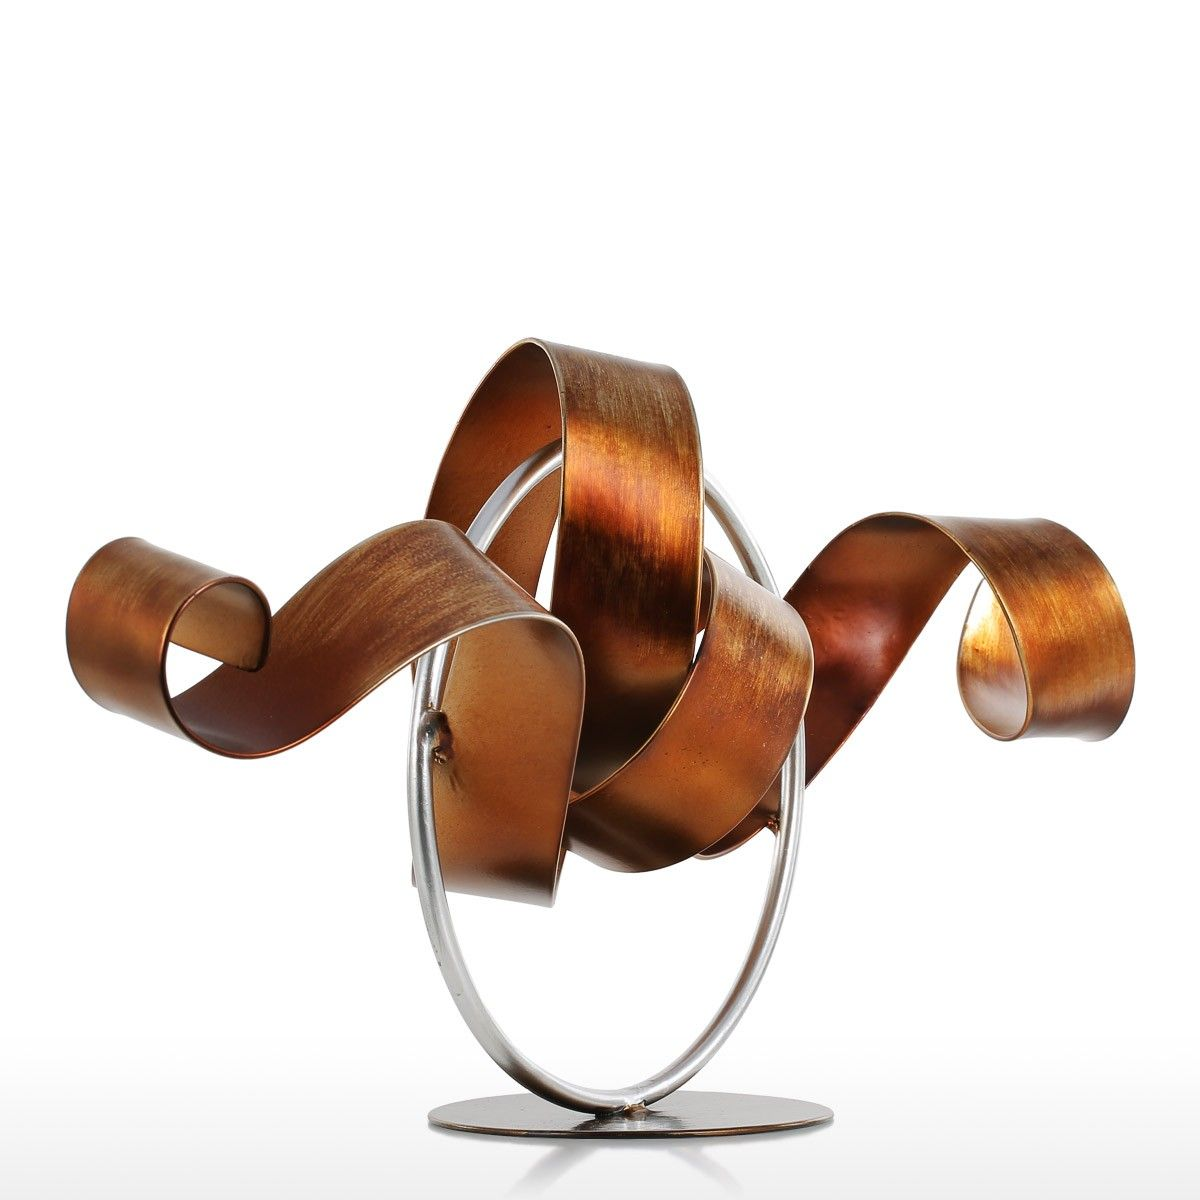 Modern Home Decorative Object Metal Craft Sculpture Abstract ...